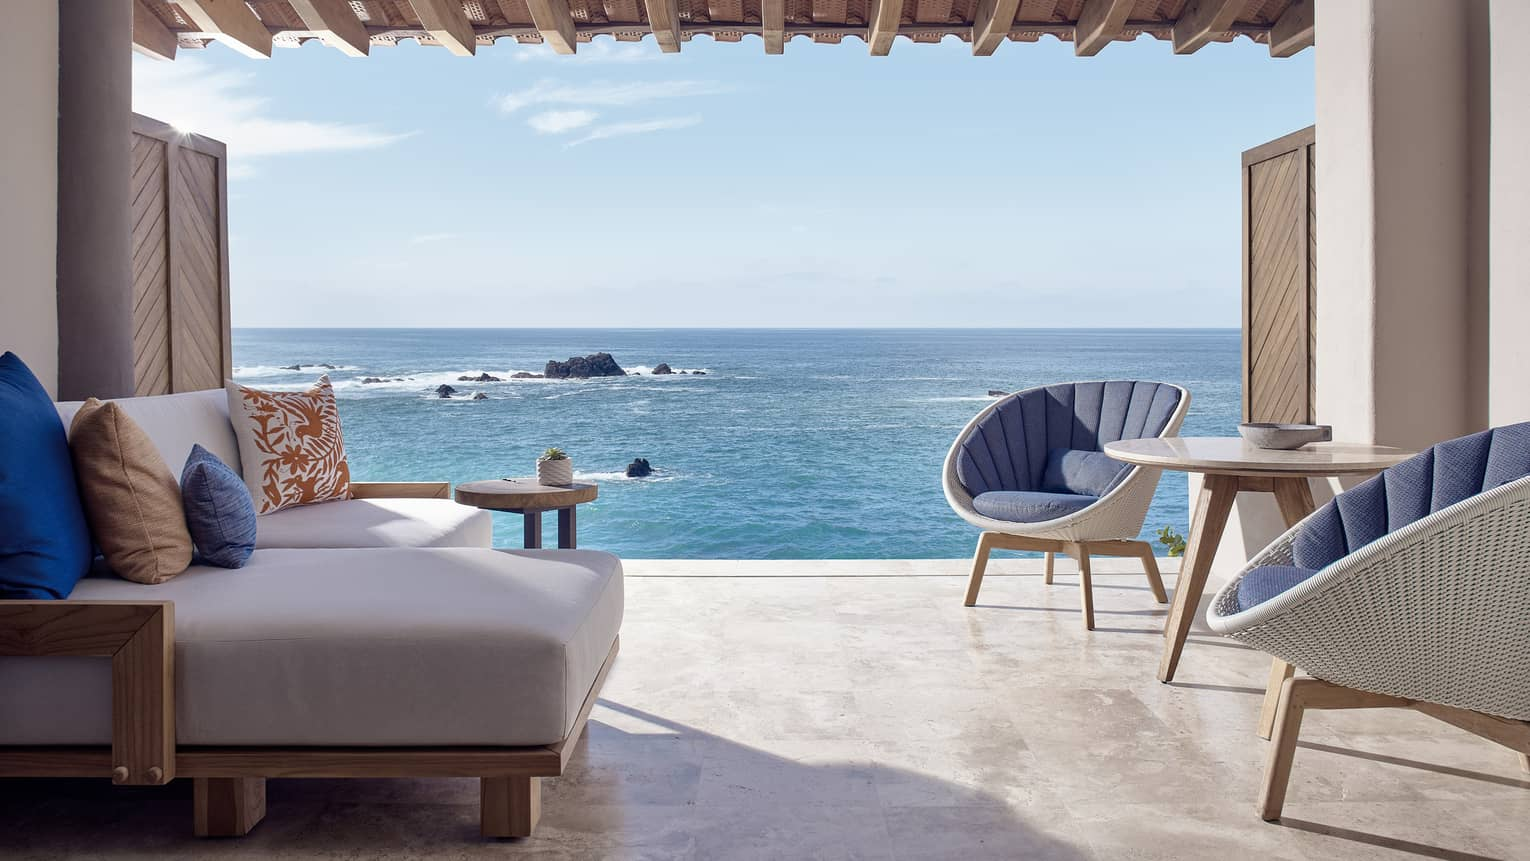 Sitting area with two chairs and one sofa, opening to the sea